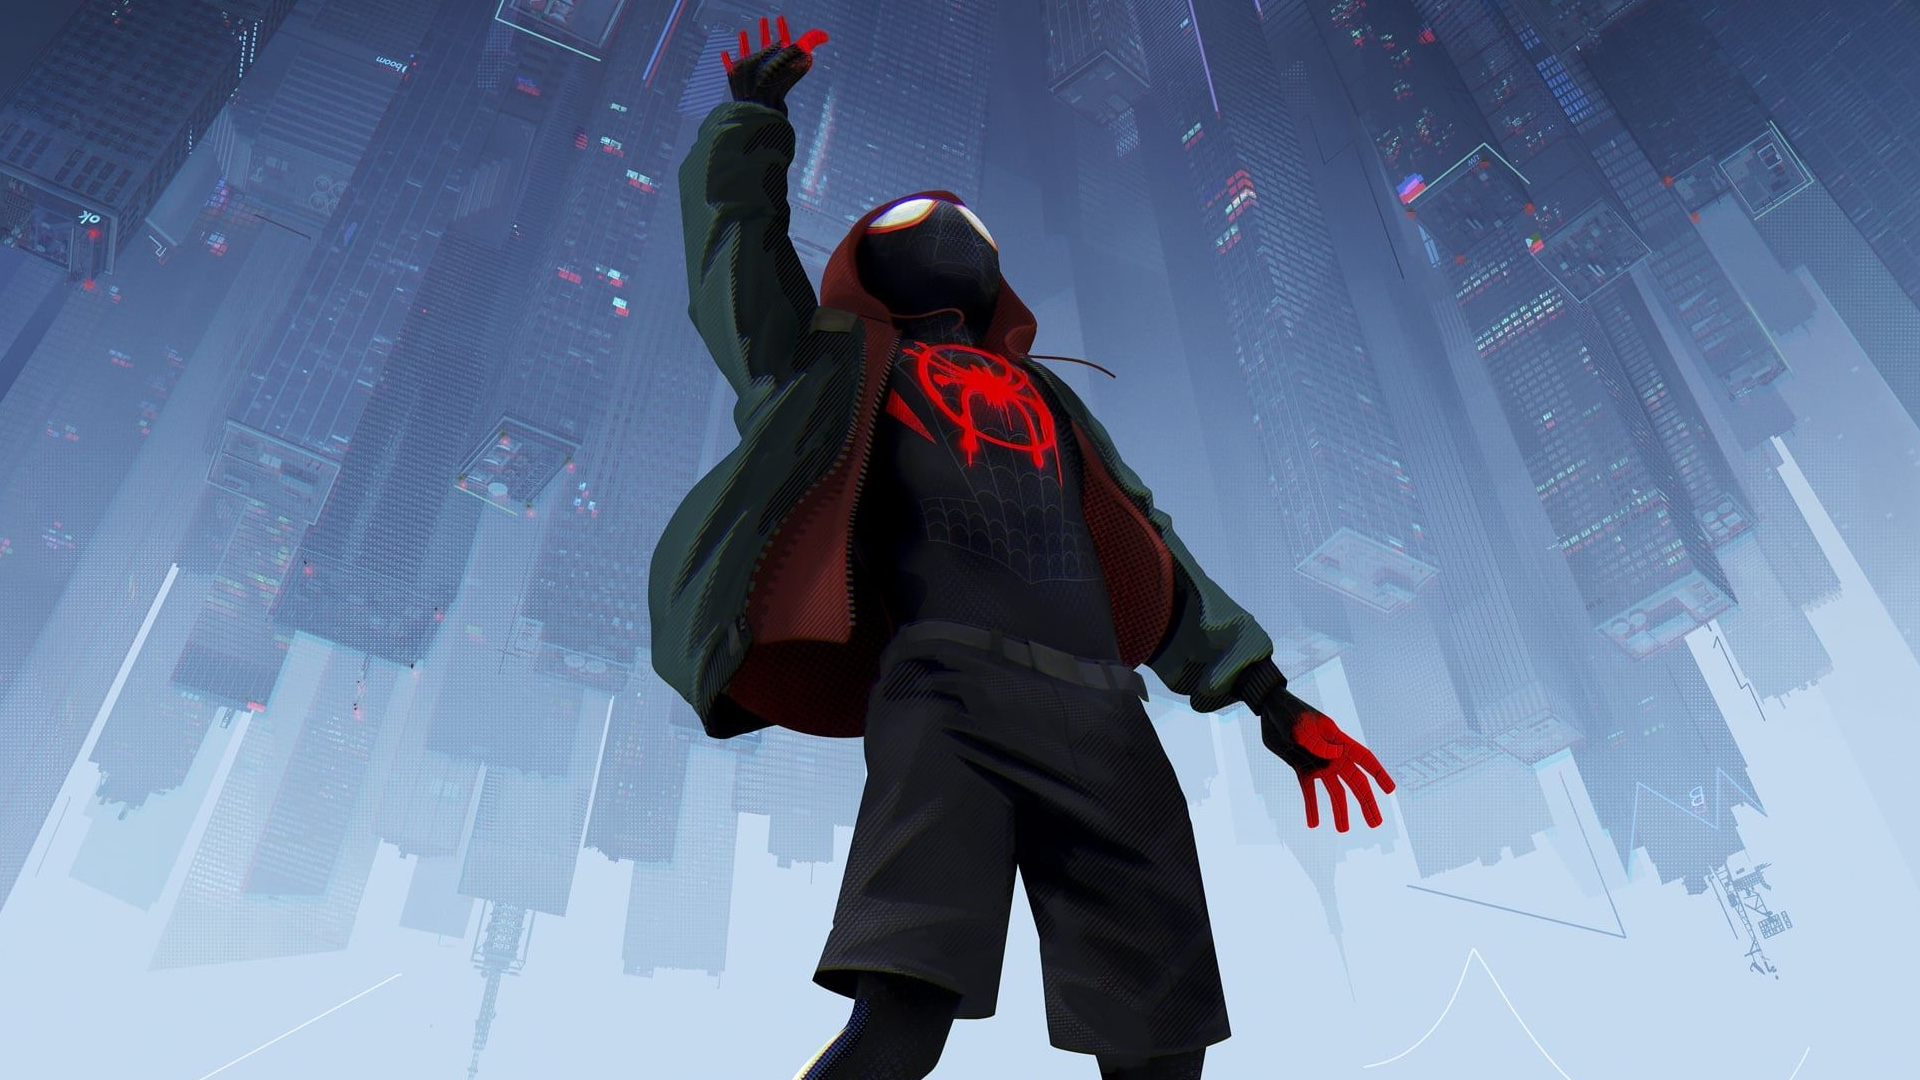 the-spider-man-into-the-spider-verse-sequel-may-see-a-two-year-time-jump-social.jpg